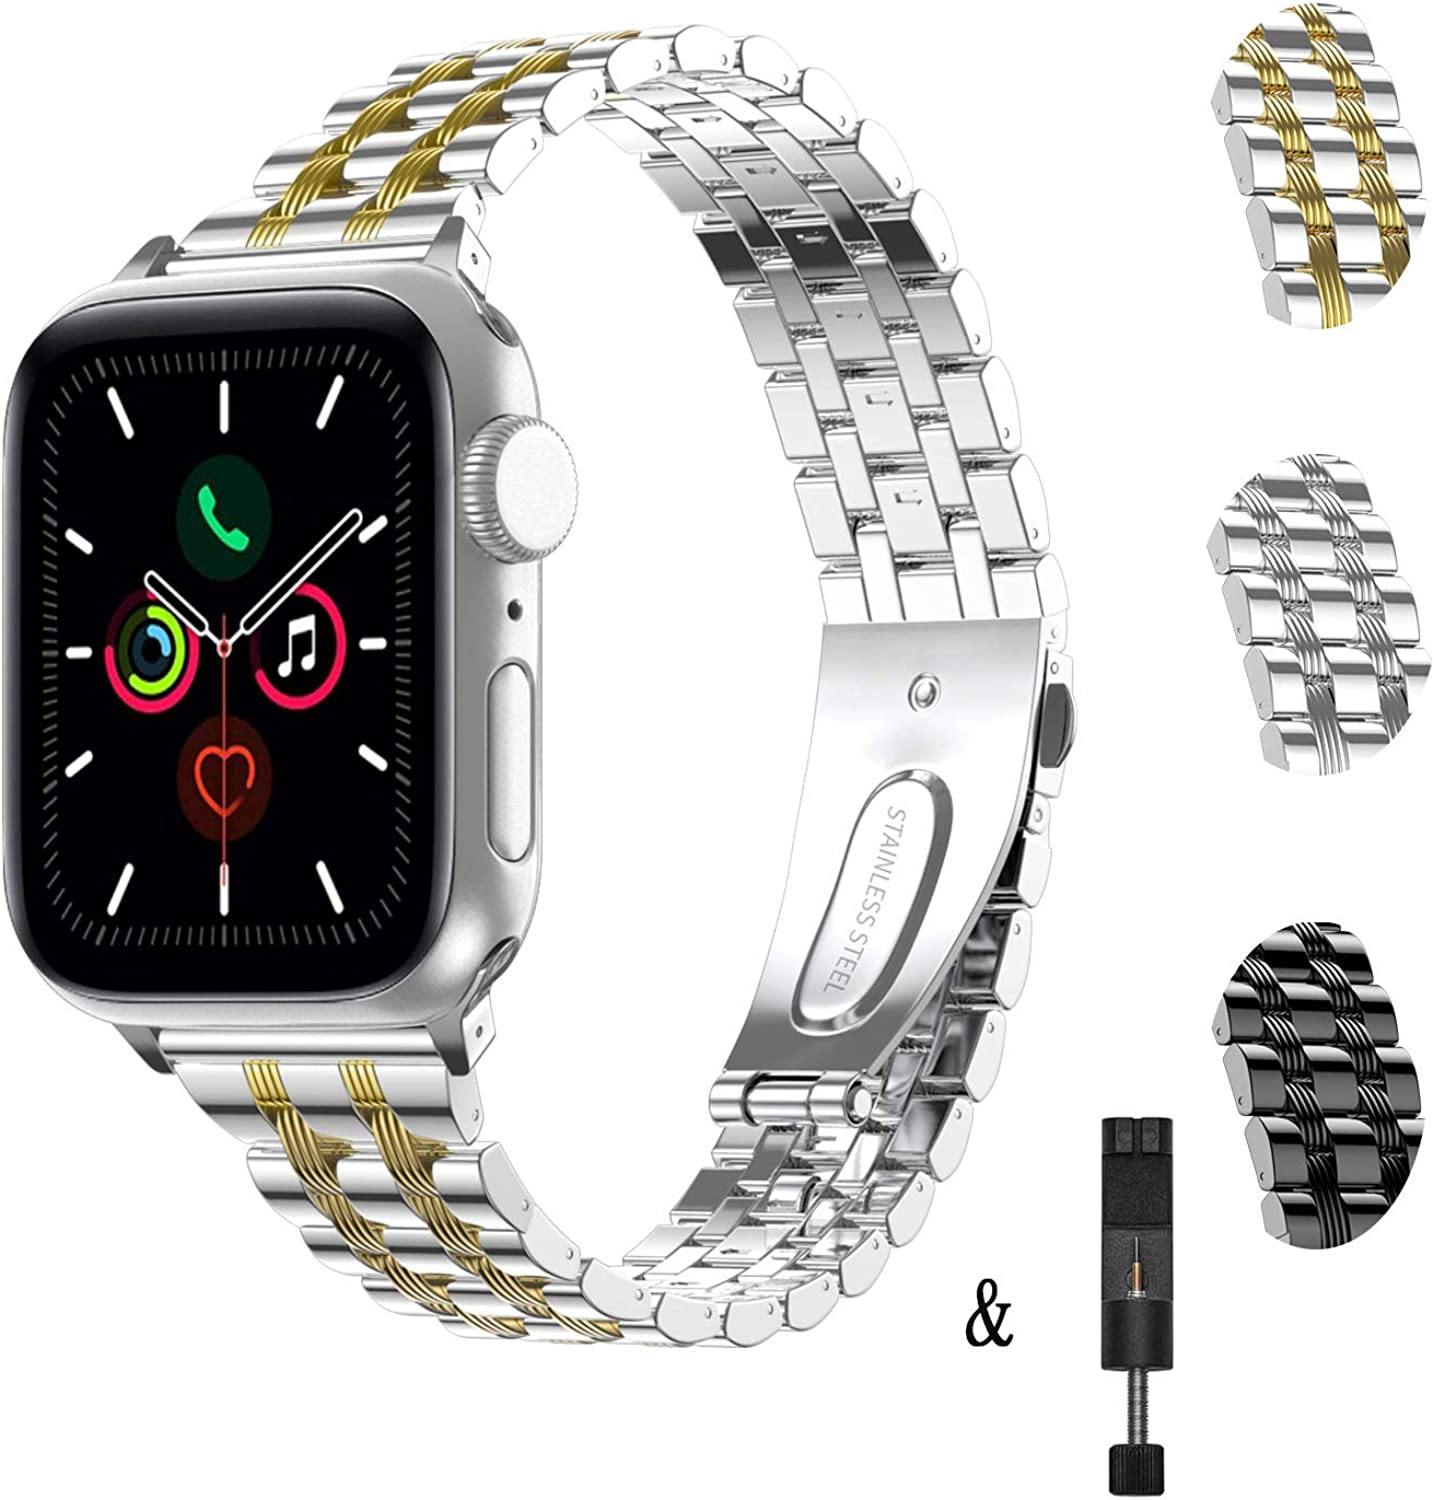 TOWOND for Apple Watch Band 38mm 40mm 42mm 44mm, iWatch Band Women Stainless Steel Bracelet Adjustable Wristband Metal Buckle Clasp Strap for iWatch Series SE Series 6 5 4 3 2 1